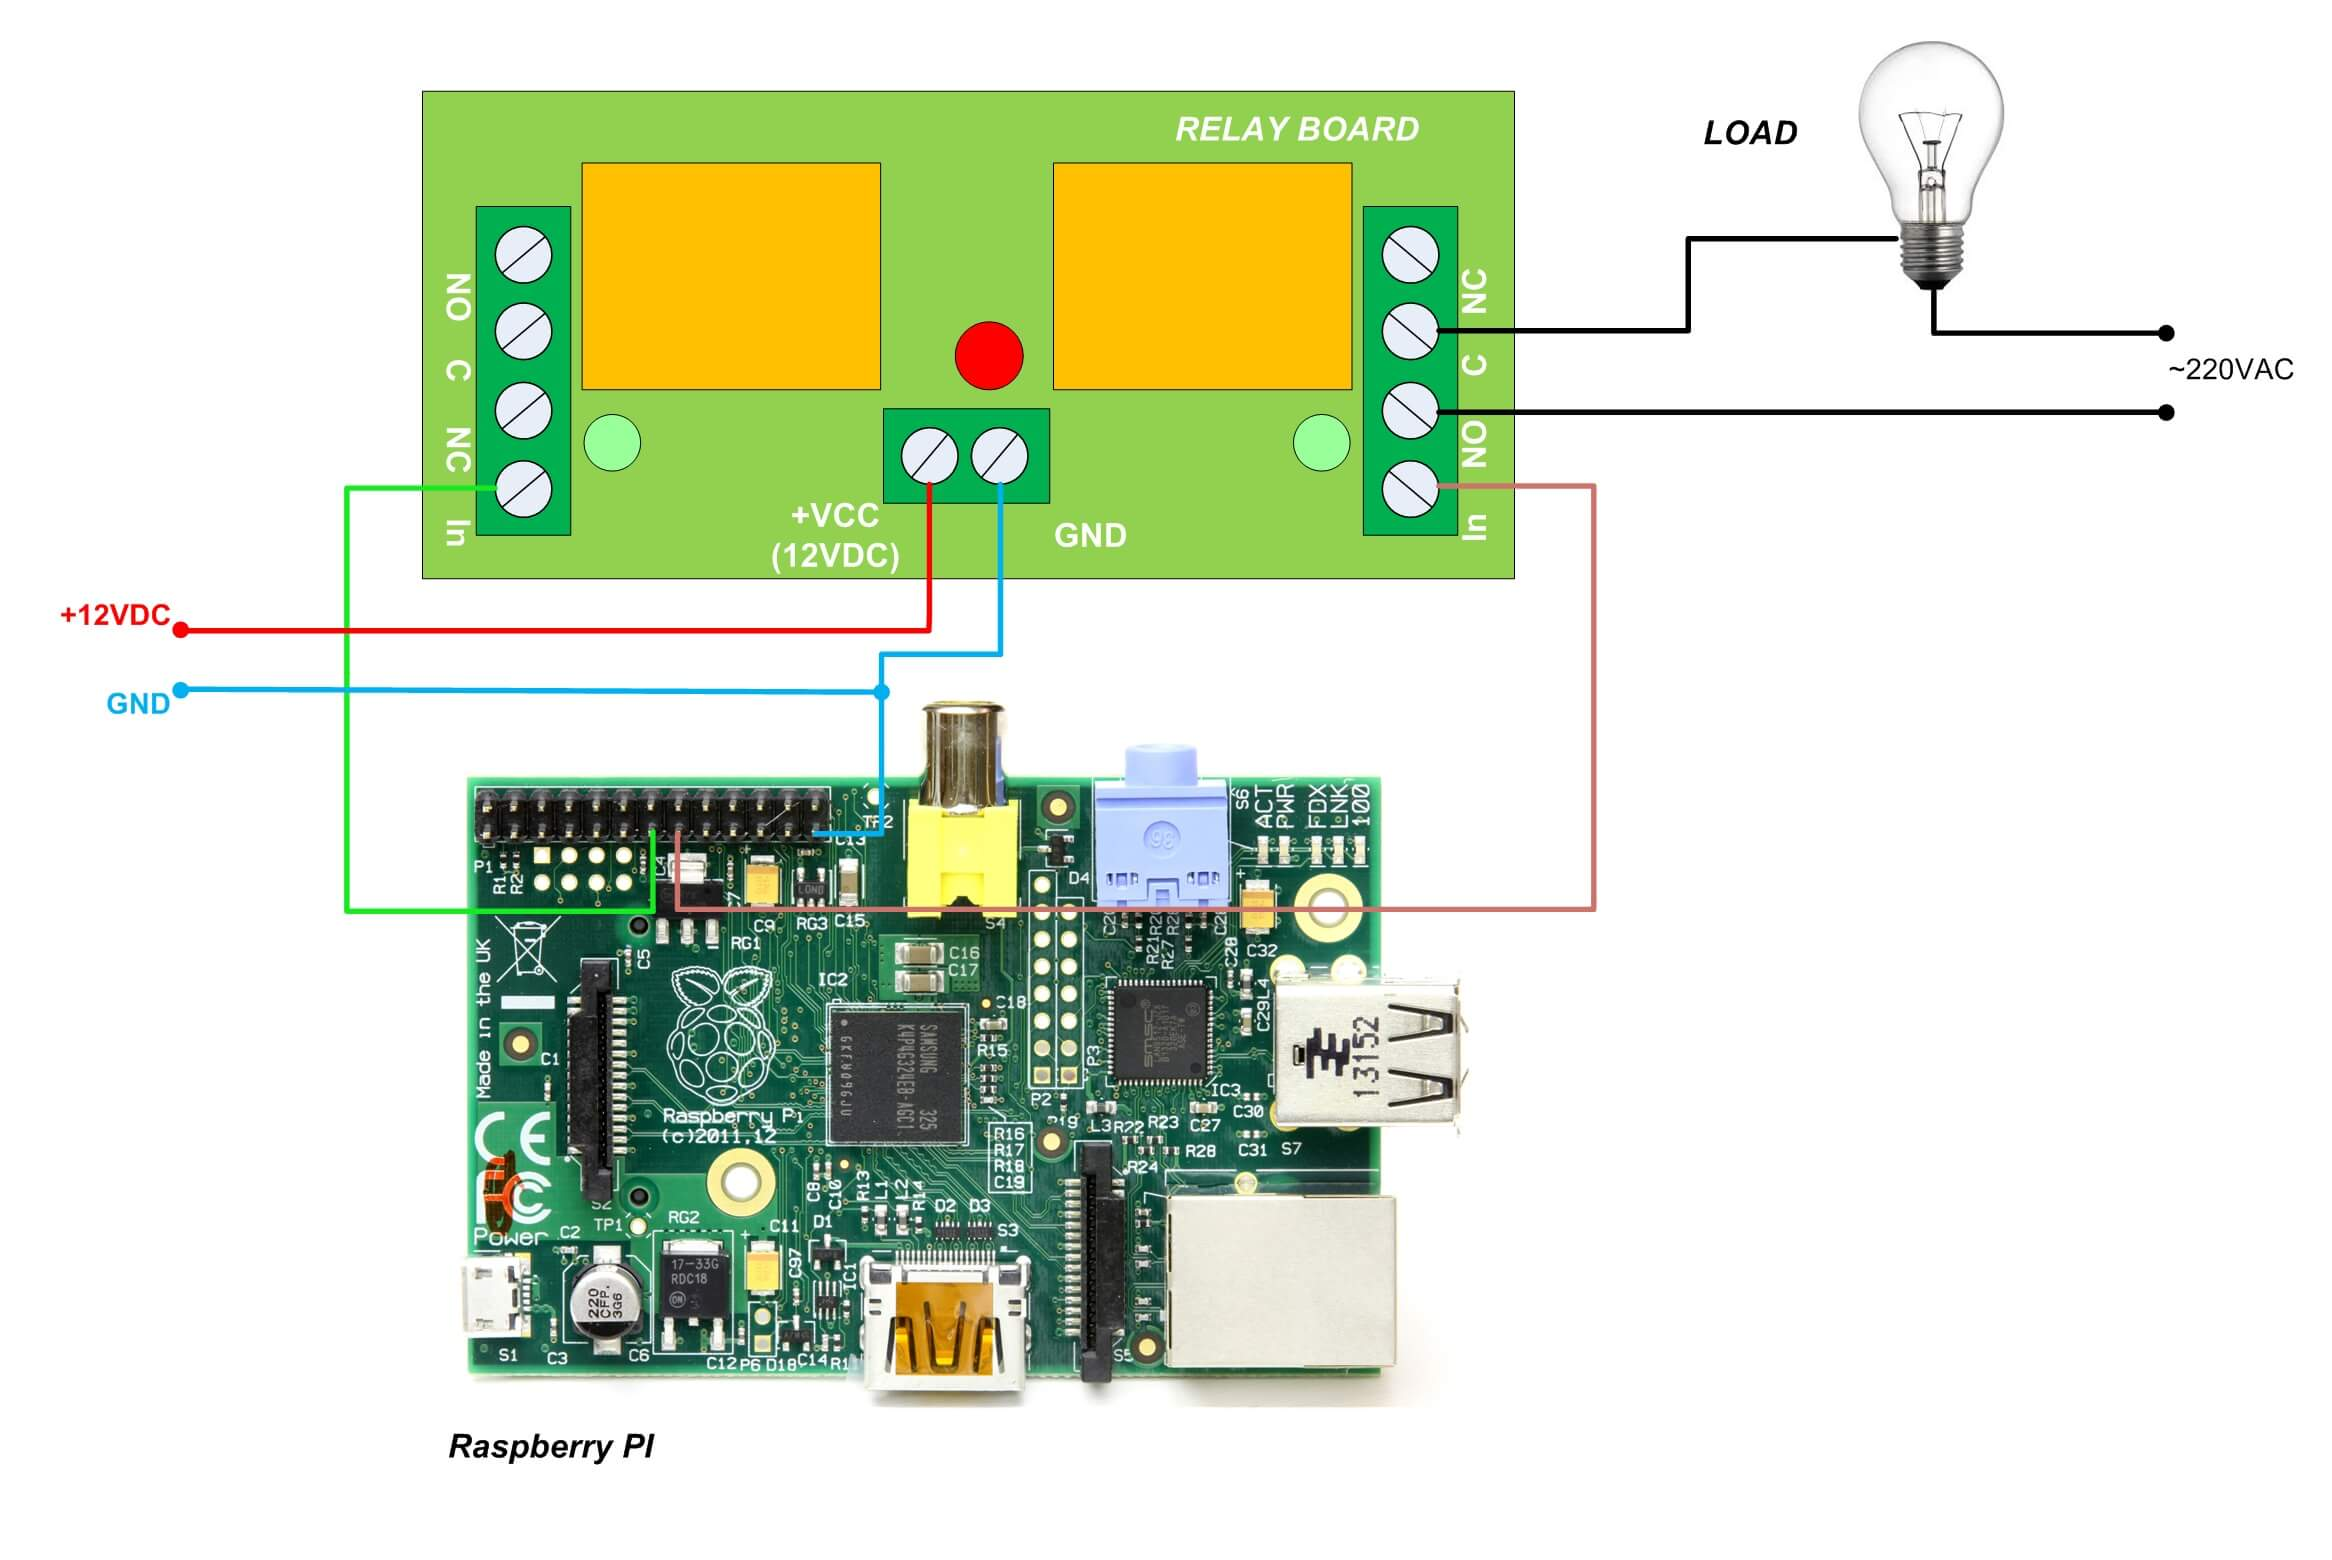 wiring diagram 12 volt relay single phase motor with run capacitor 12v dc best library board connected to raspberry pi